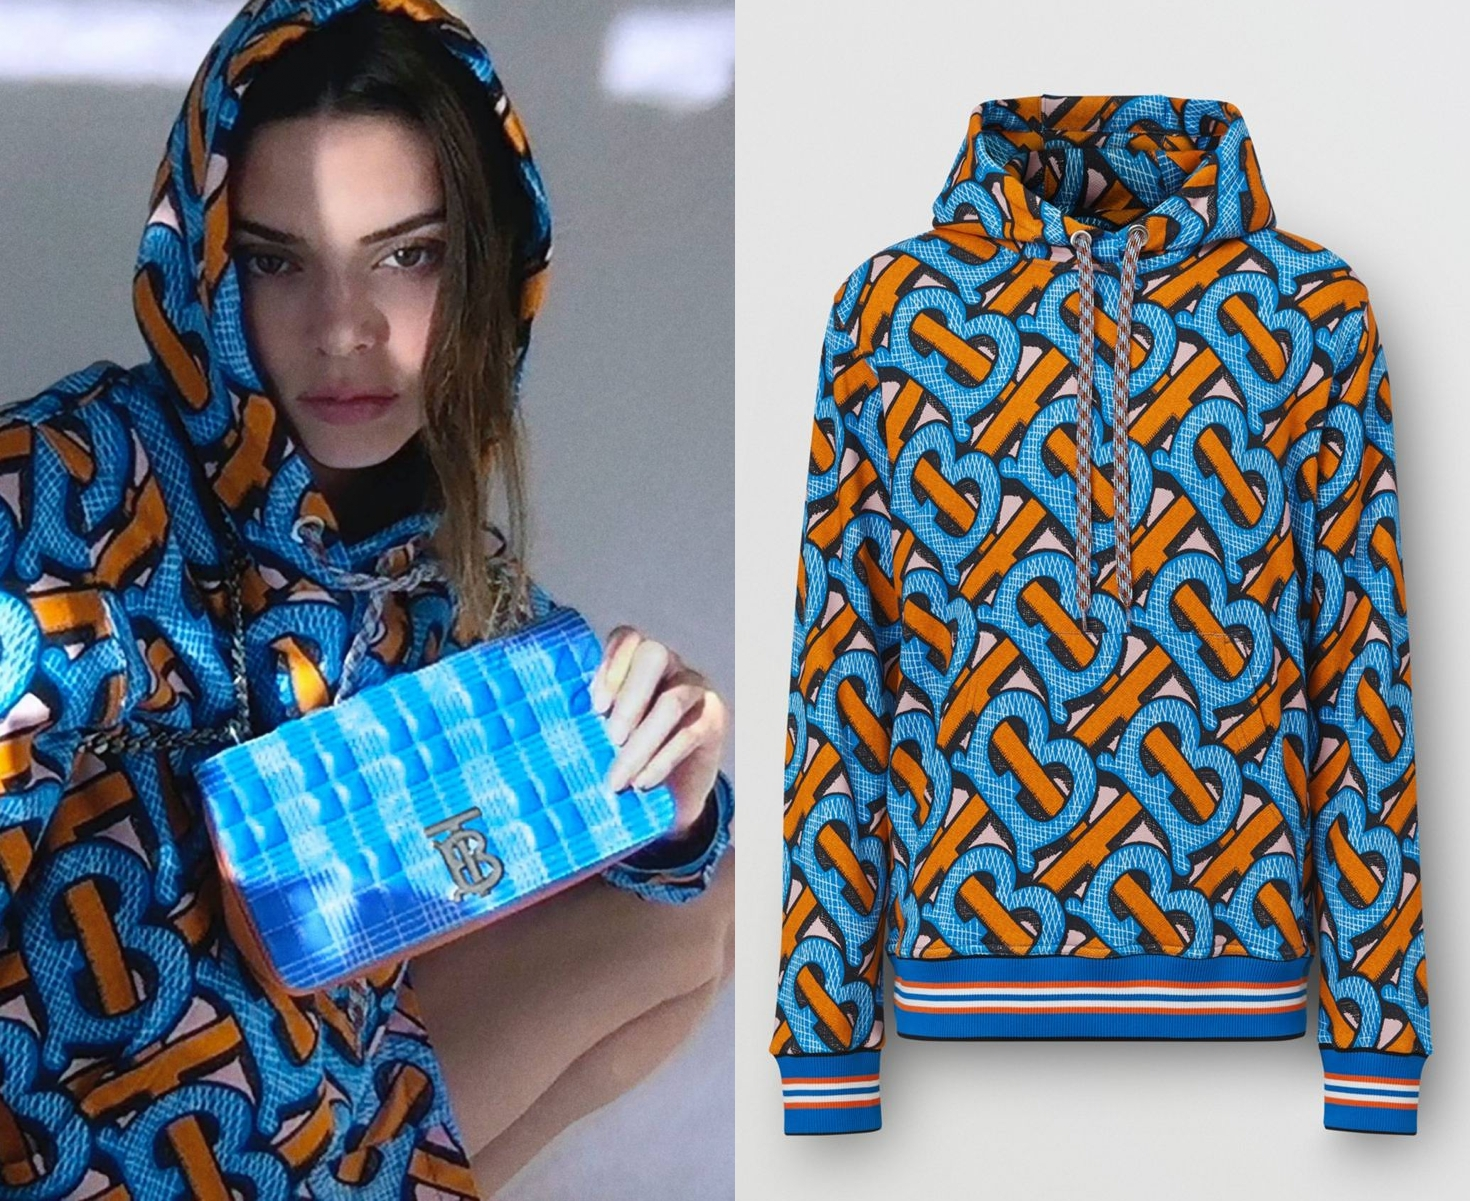 Kendall Jenner wearing a Oversized blue printed Burberry hoodie with extra long sleeves